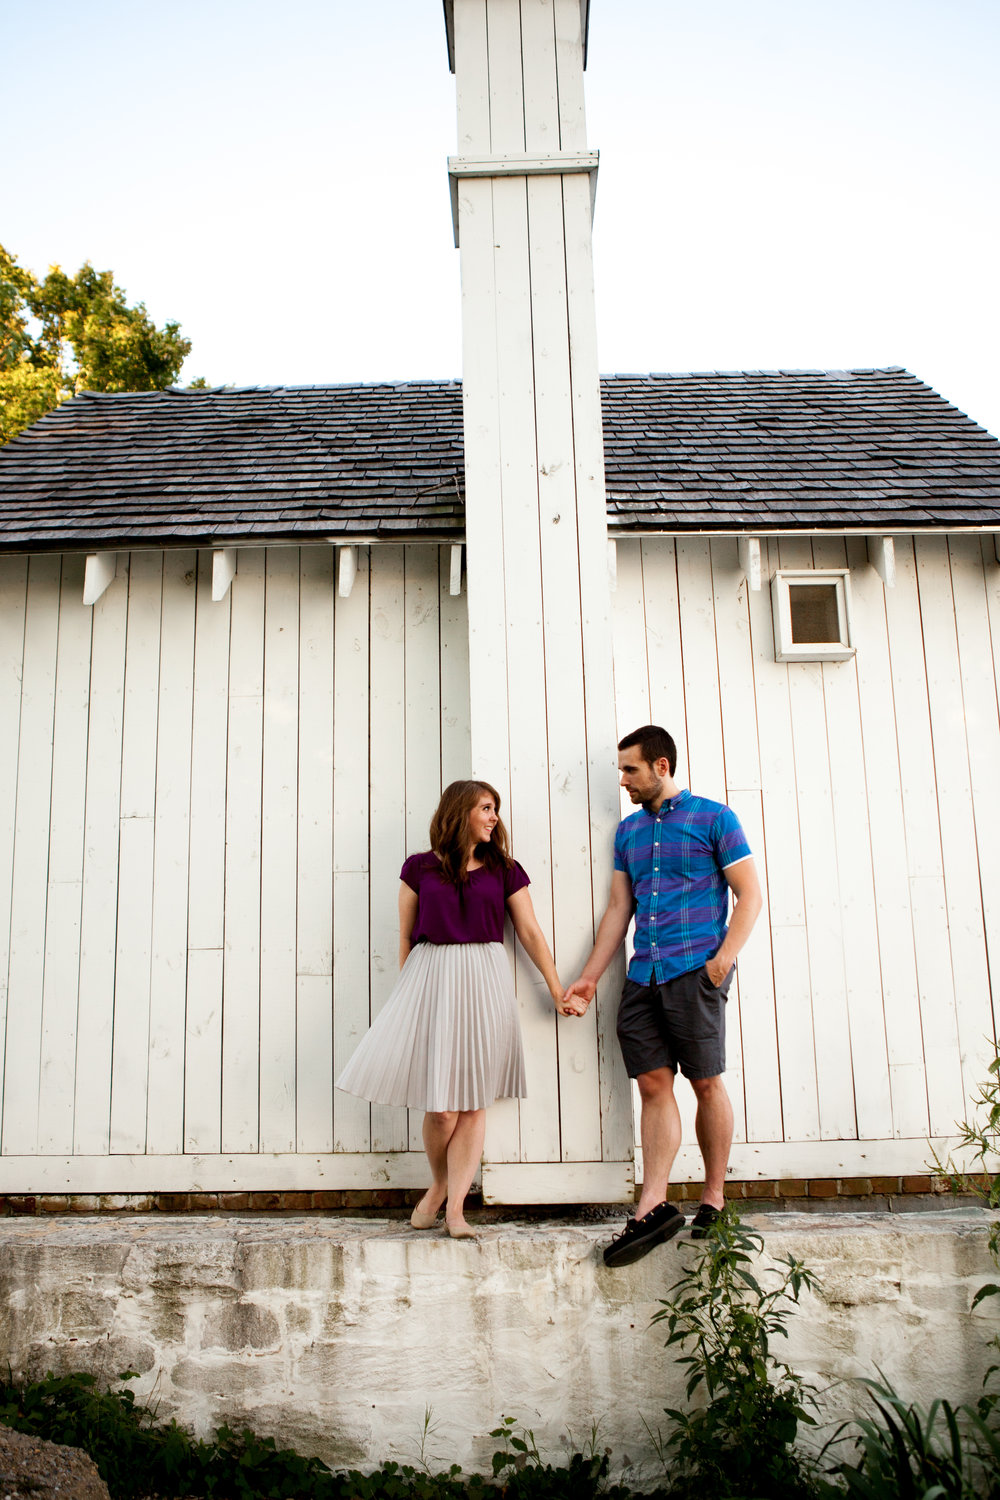 portland-maine-engagement-shoot-3274.jpg